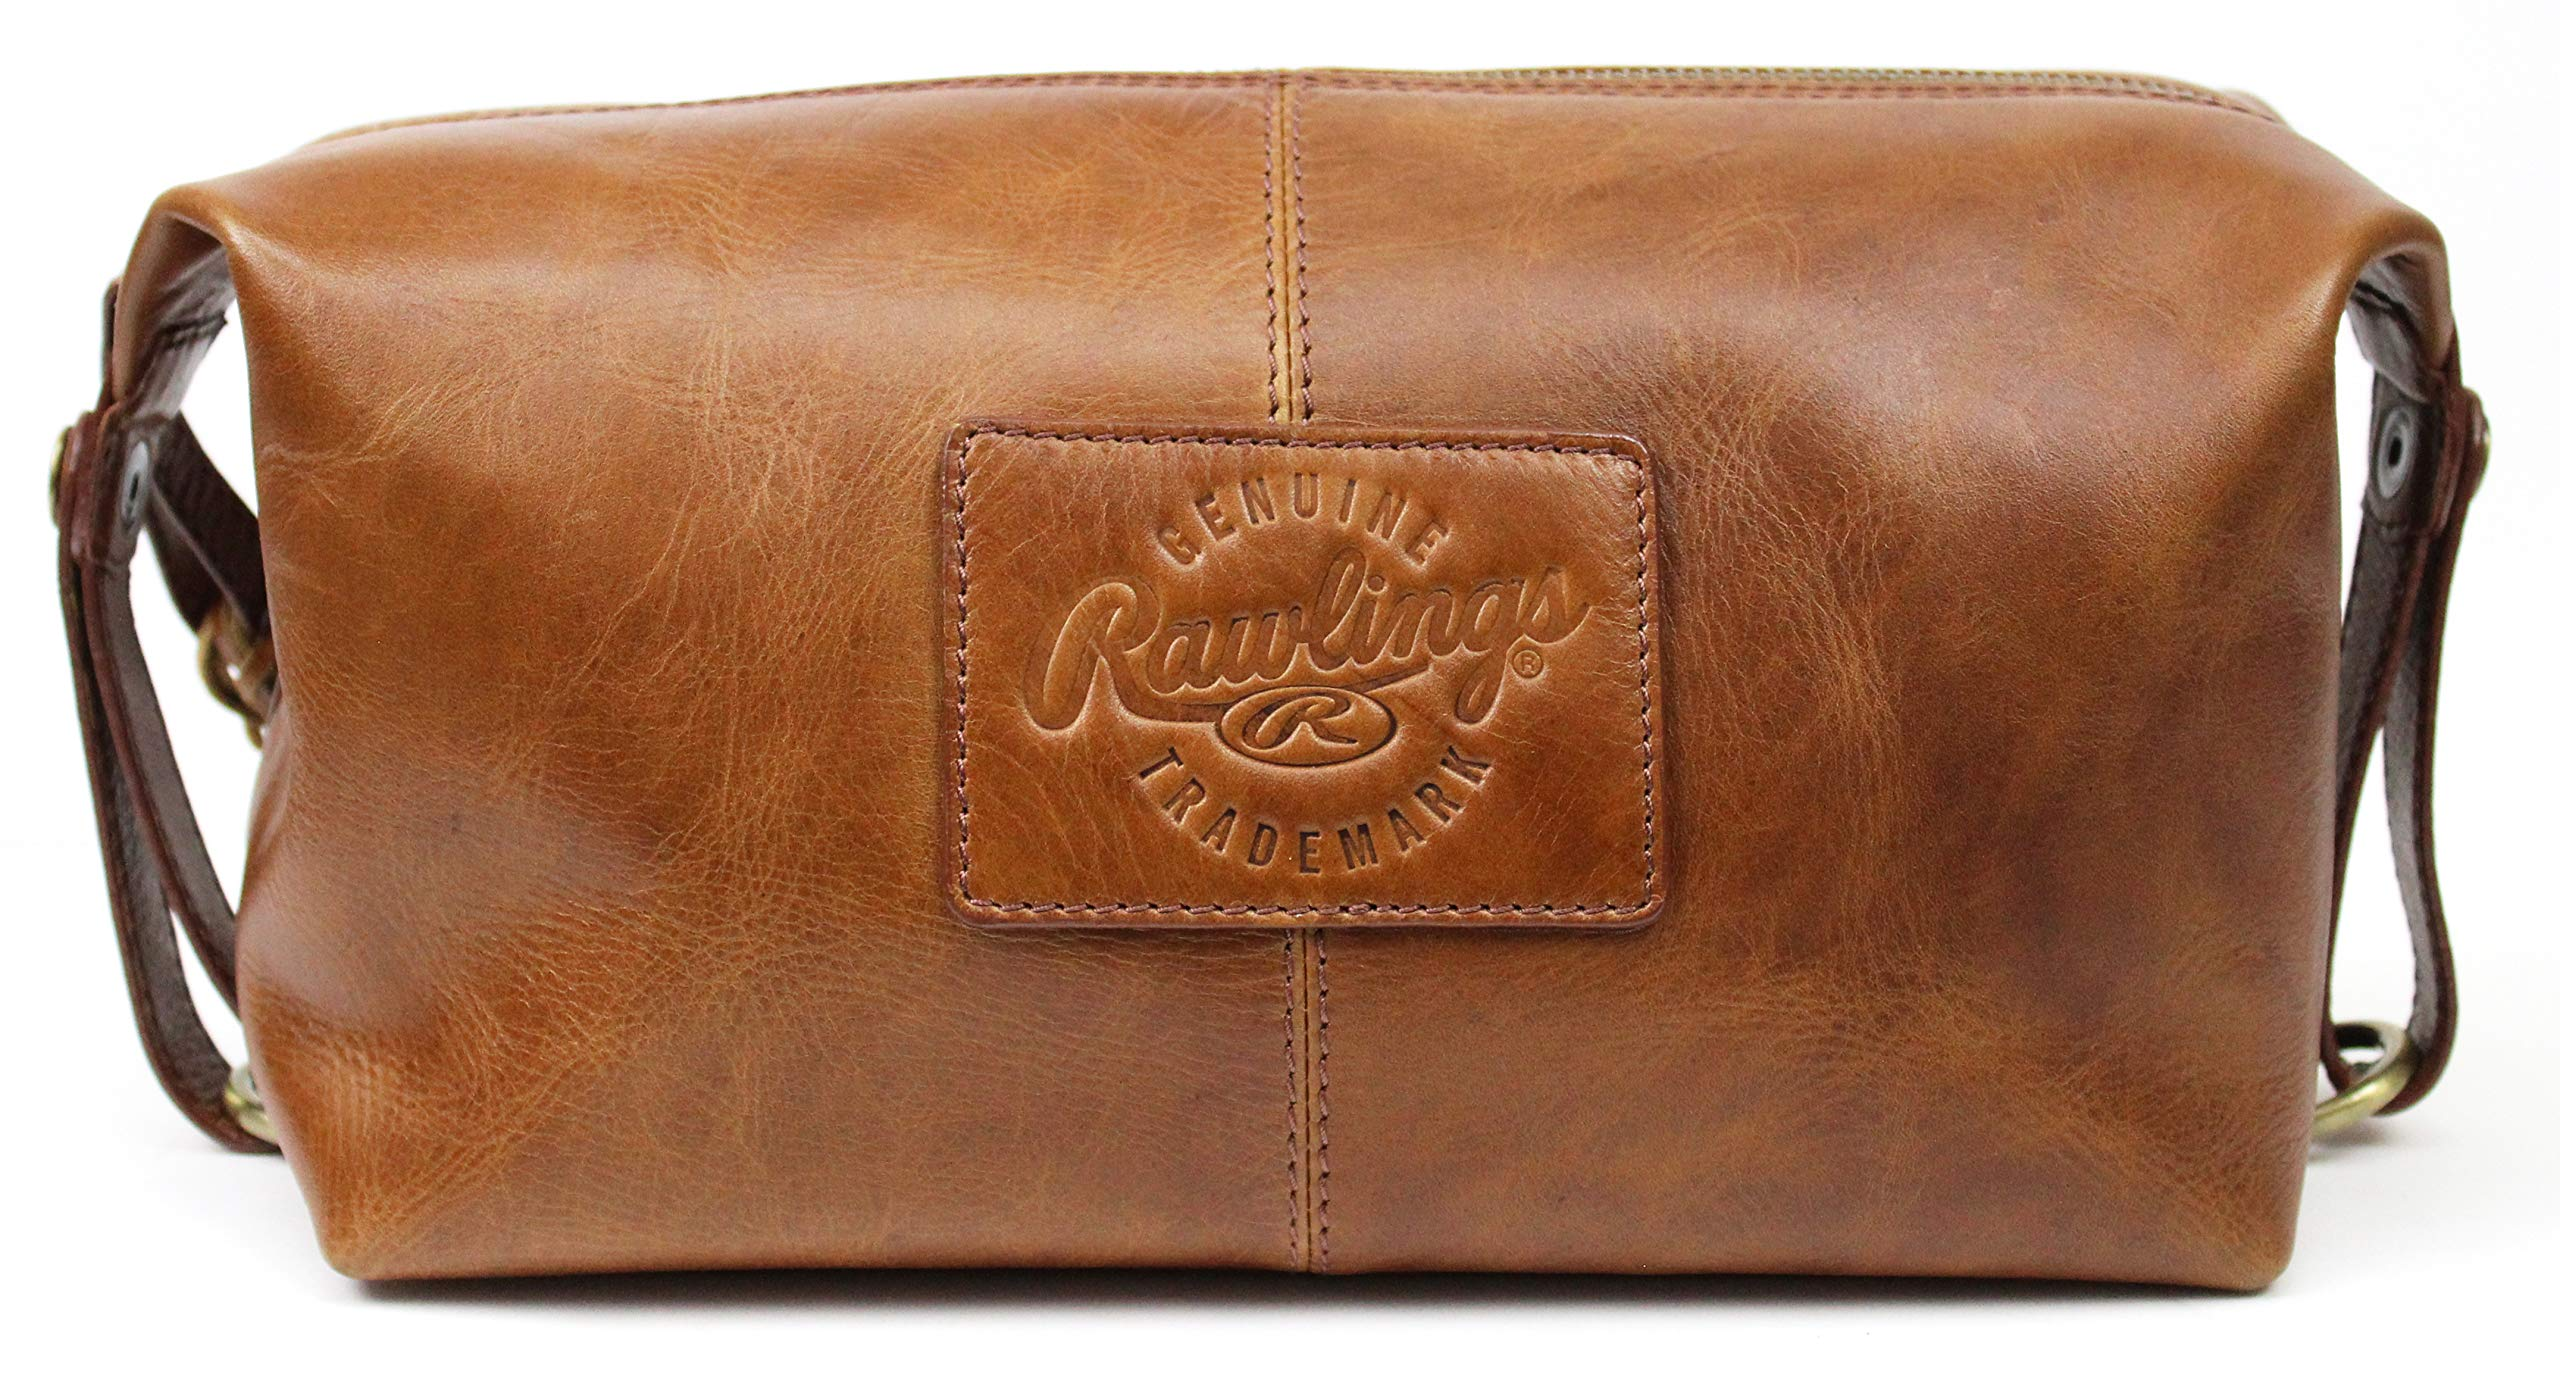 Rawlings Heritage Collection Leather Travel Kit - Tan